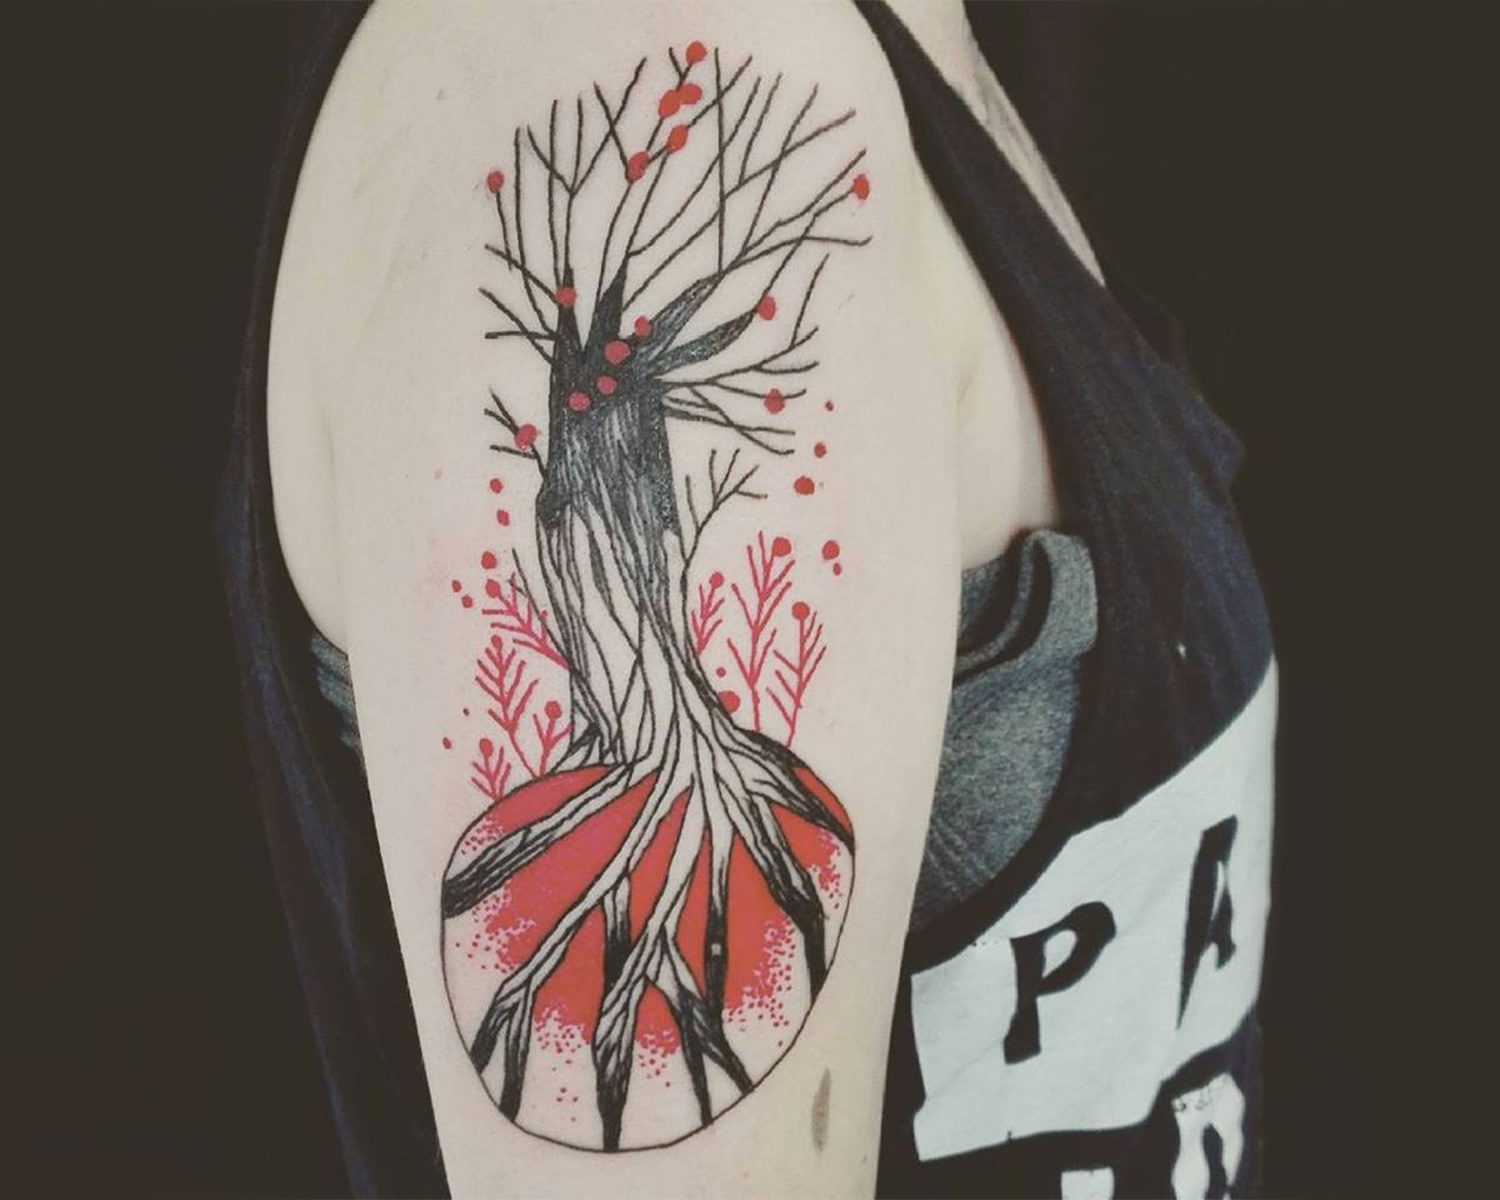 tree tattoo on arm, sketch style